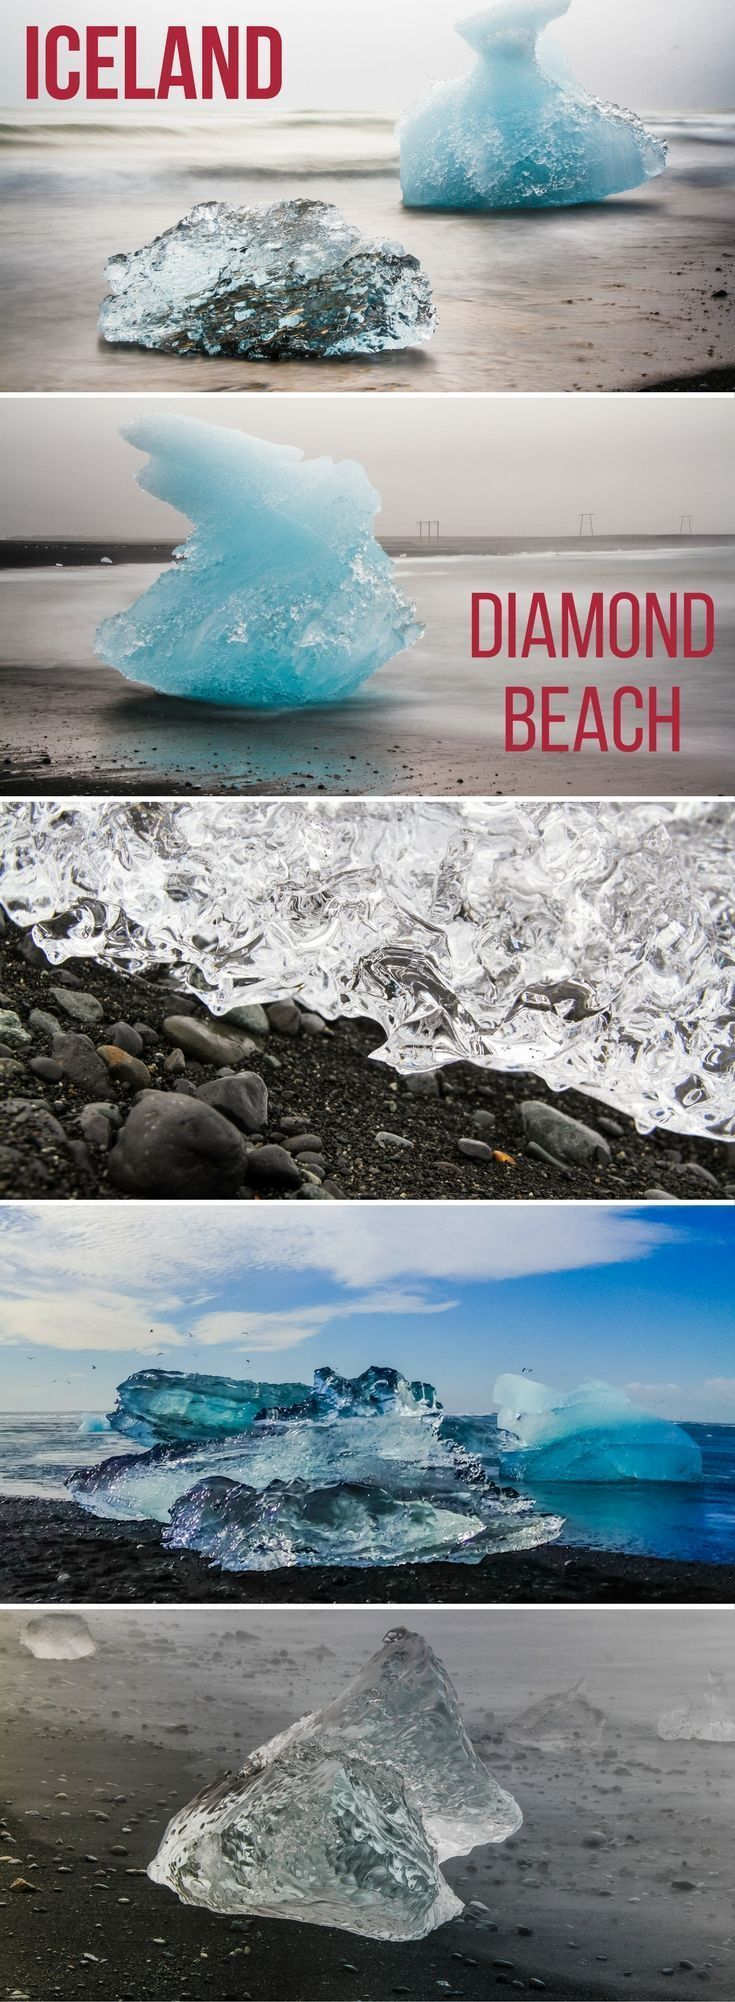 Iceland Travel - Discover the magnificent Jokulsarlon beach Iceland also known as Diamond Beach because the icebergs wash up on the black sand beach and sparkle like diamonds! Many photos in the article and info to plan your visit : https://www.zigzagonearth.com/jokulsarlon-iceberg-beach-iceland/ | Iceland Travel Tips | Iceland scenery | Iceland Itinerary | things to do in Iceland